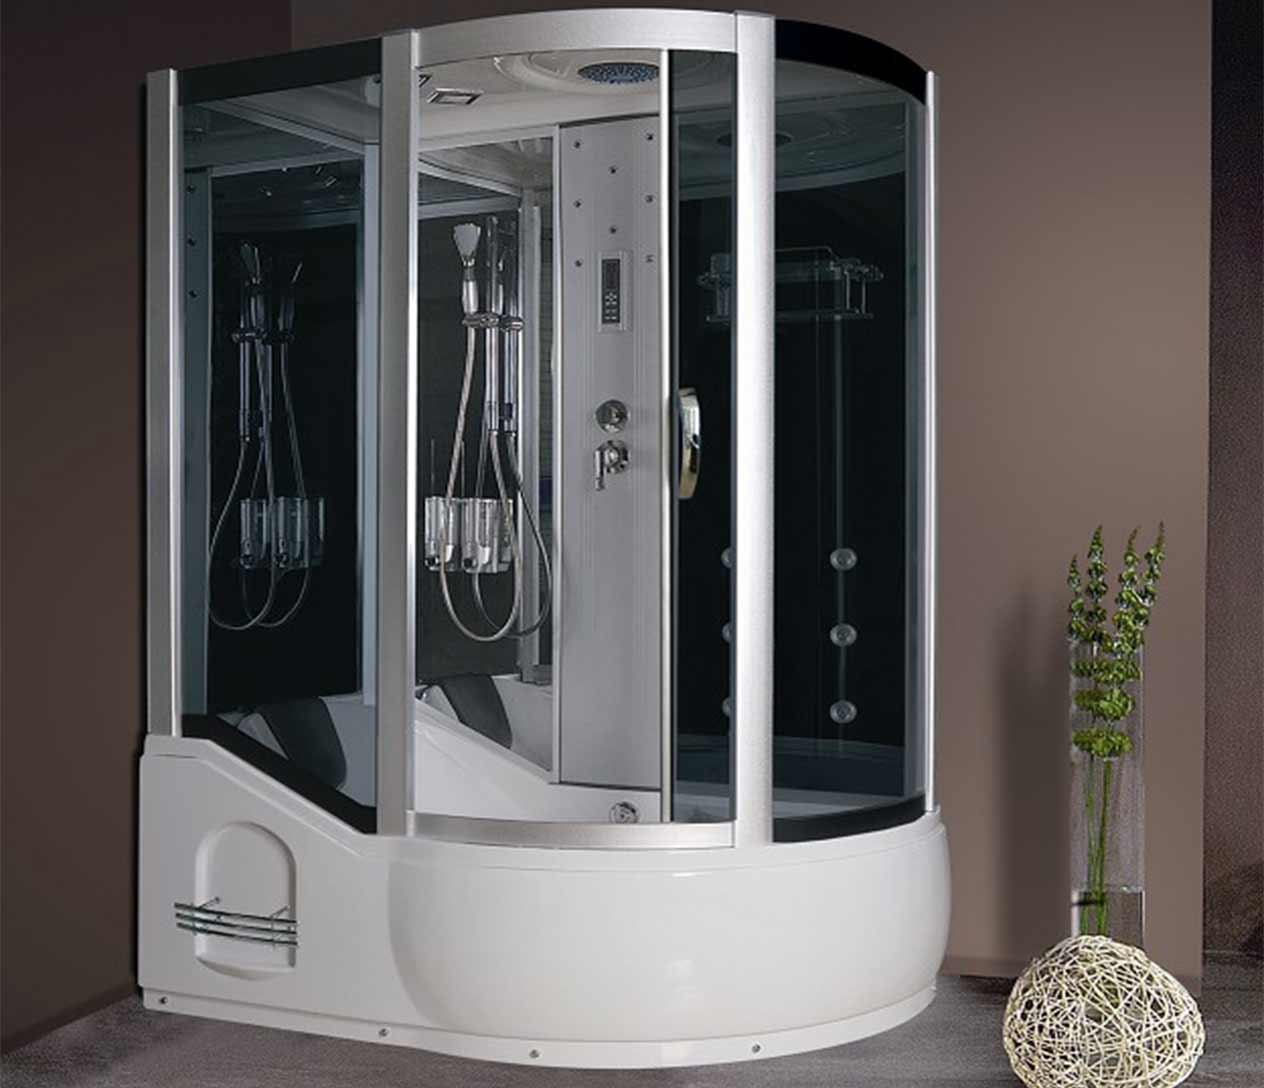 ax 725 steam shower l